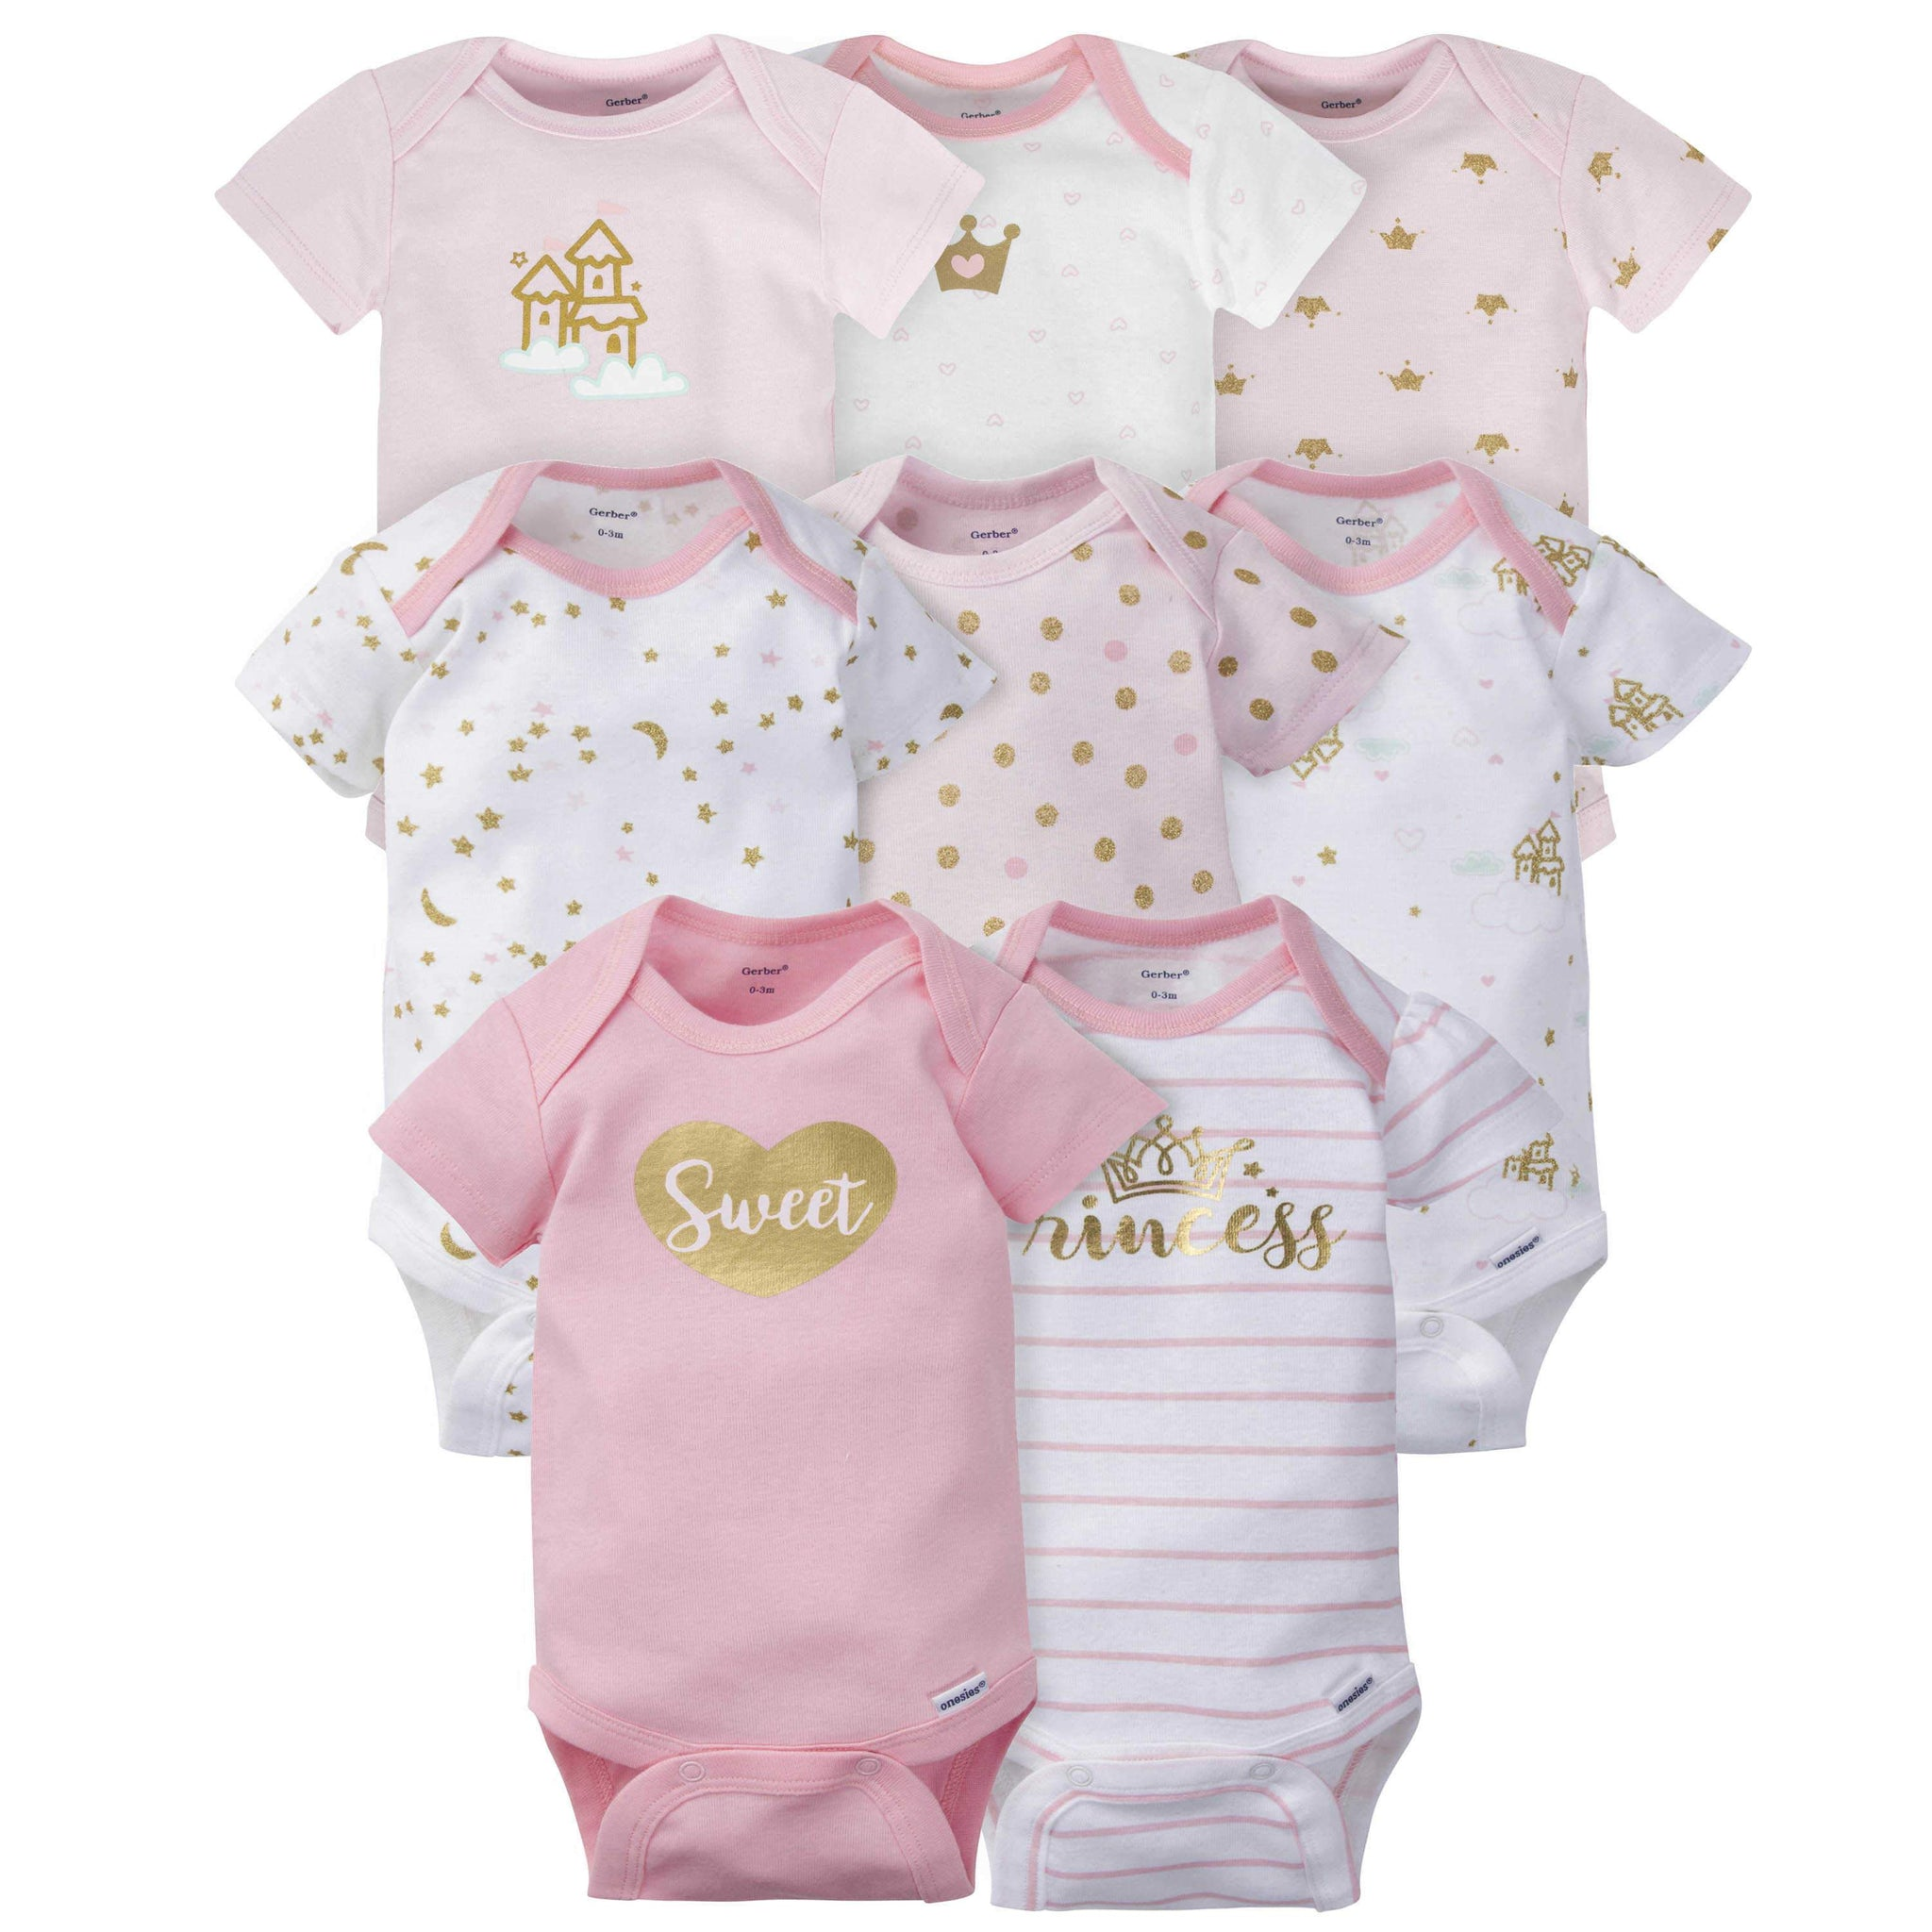 Gerber® 8-pack Baby Girls' Castle Short Sleeve Onesies®